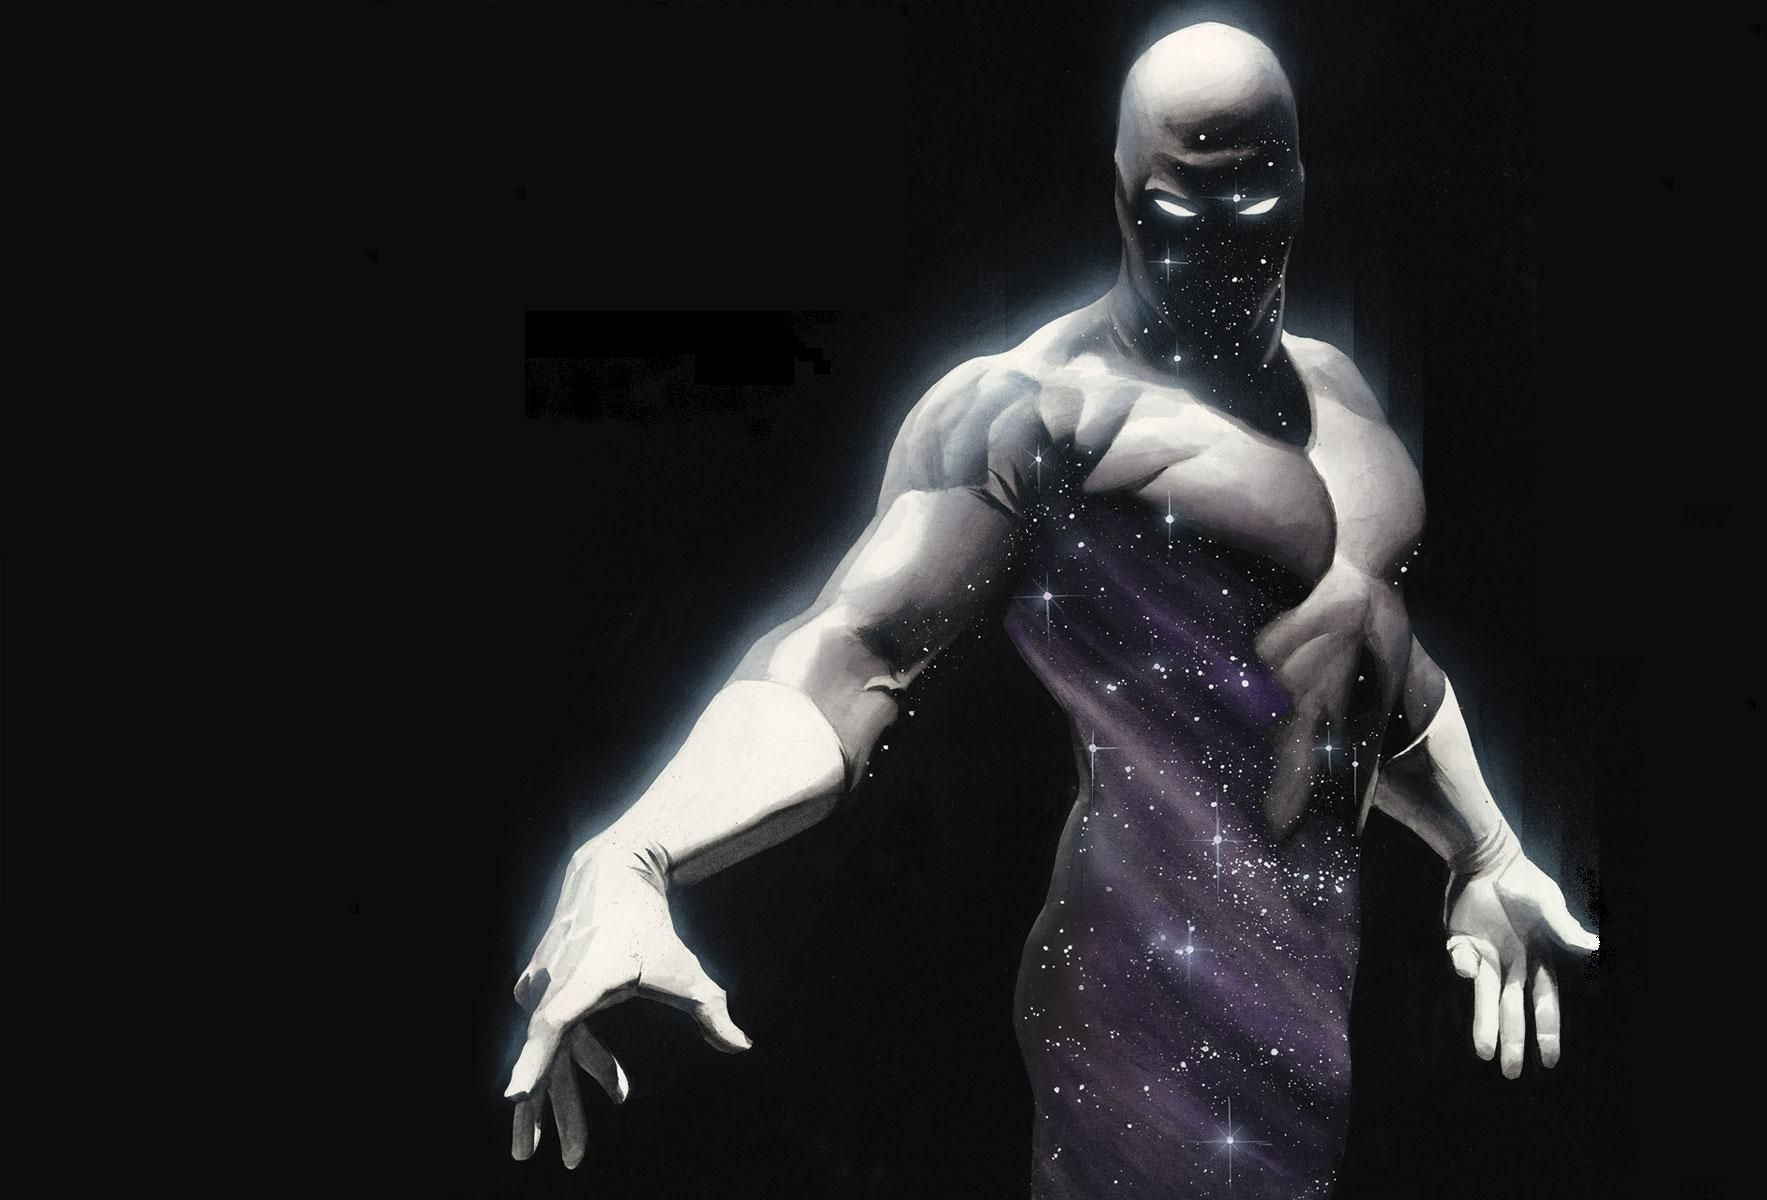 1767x1200 Silver Surfer Wallpaper HD - WallpaperSafari | MARVEL - Silver ...